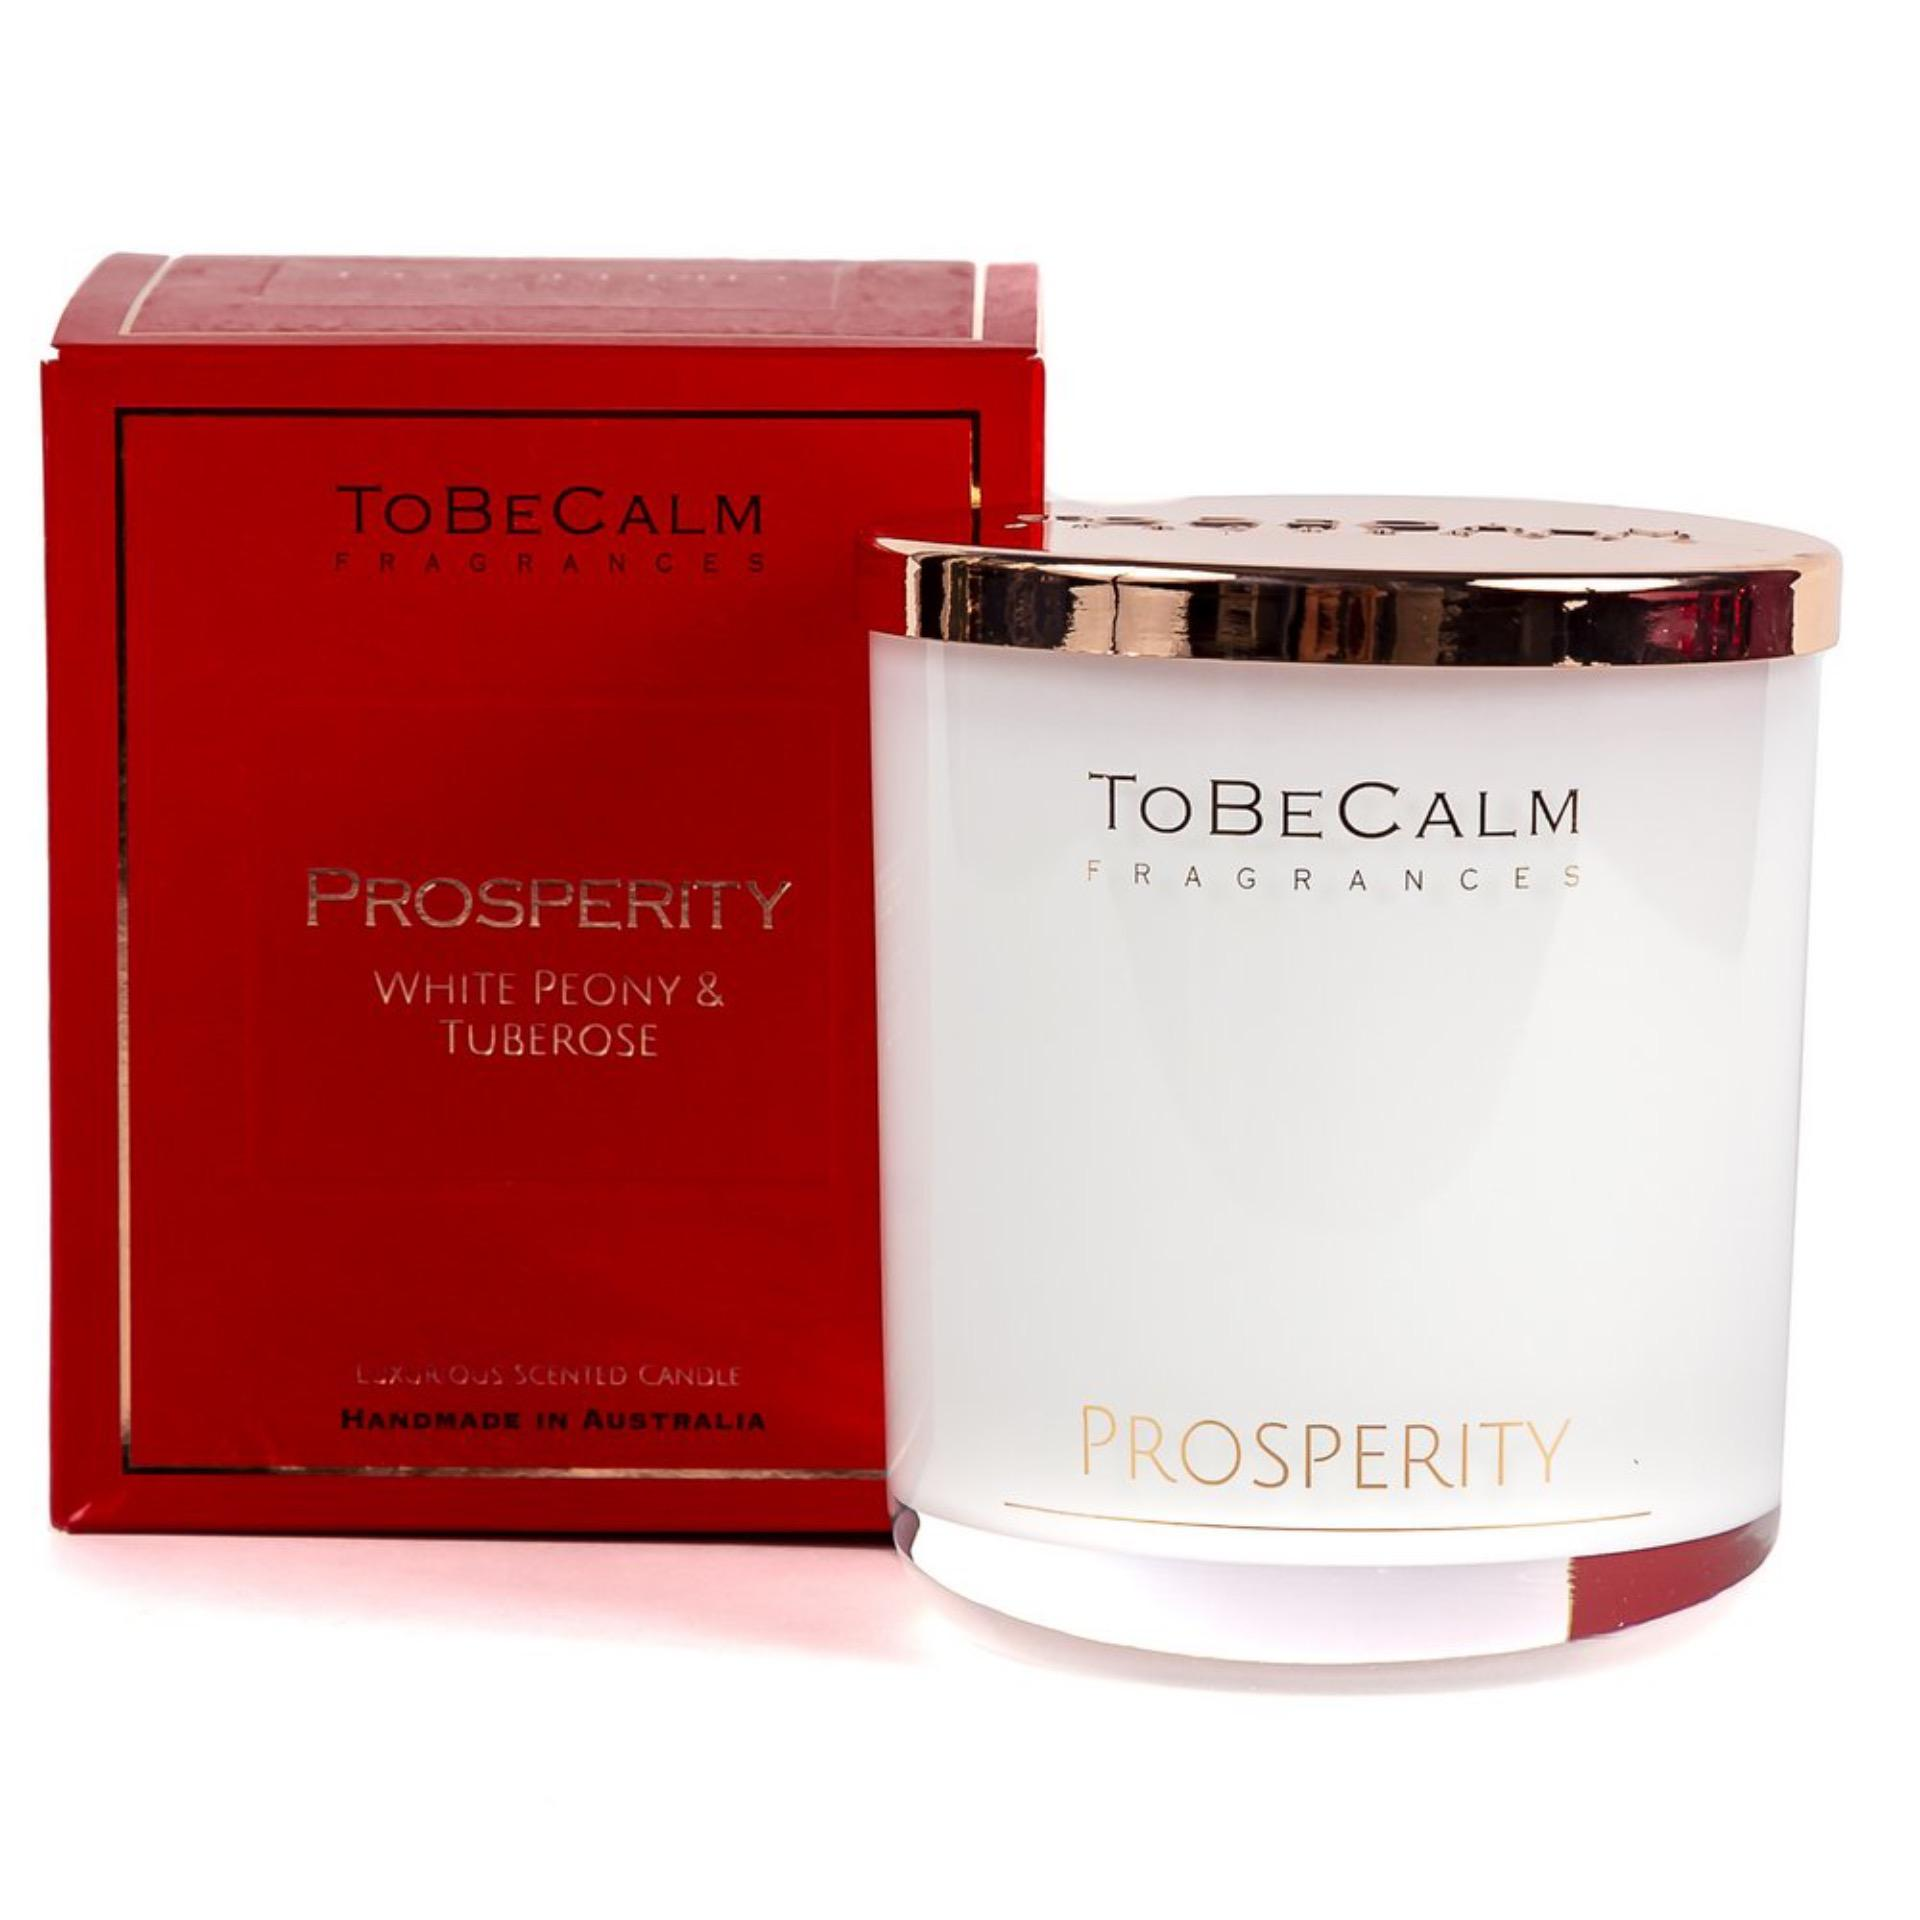 To Be Calm Prosperity - White Peony & Tuberose -  Extra Large Soy Candle